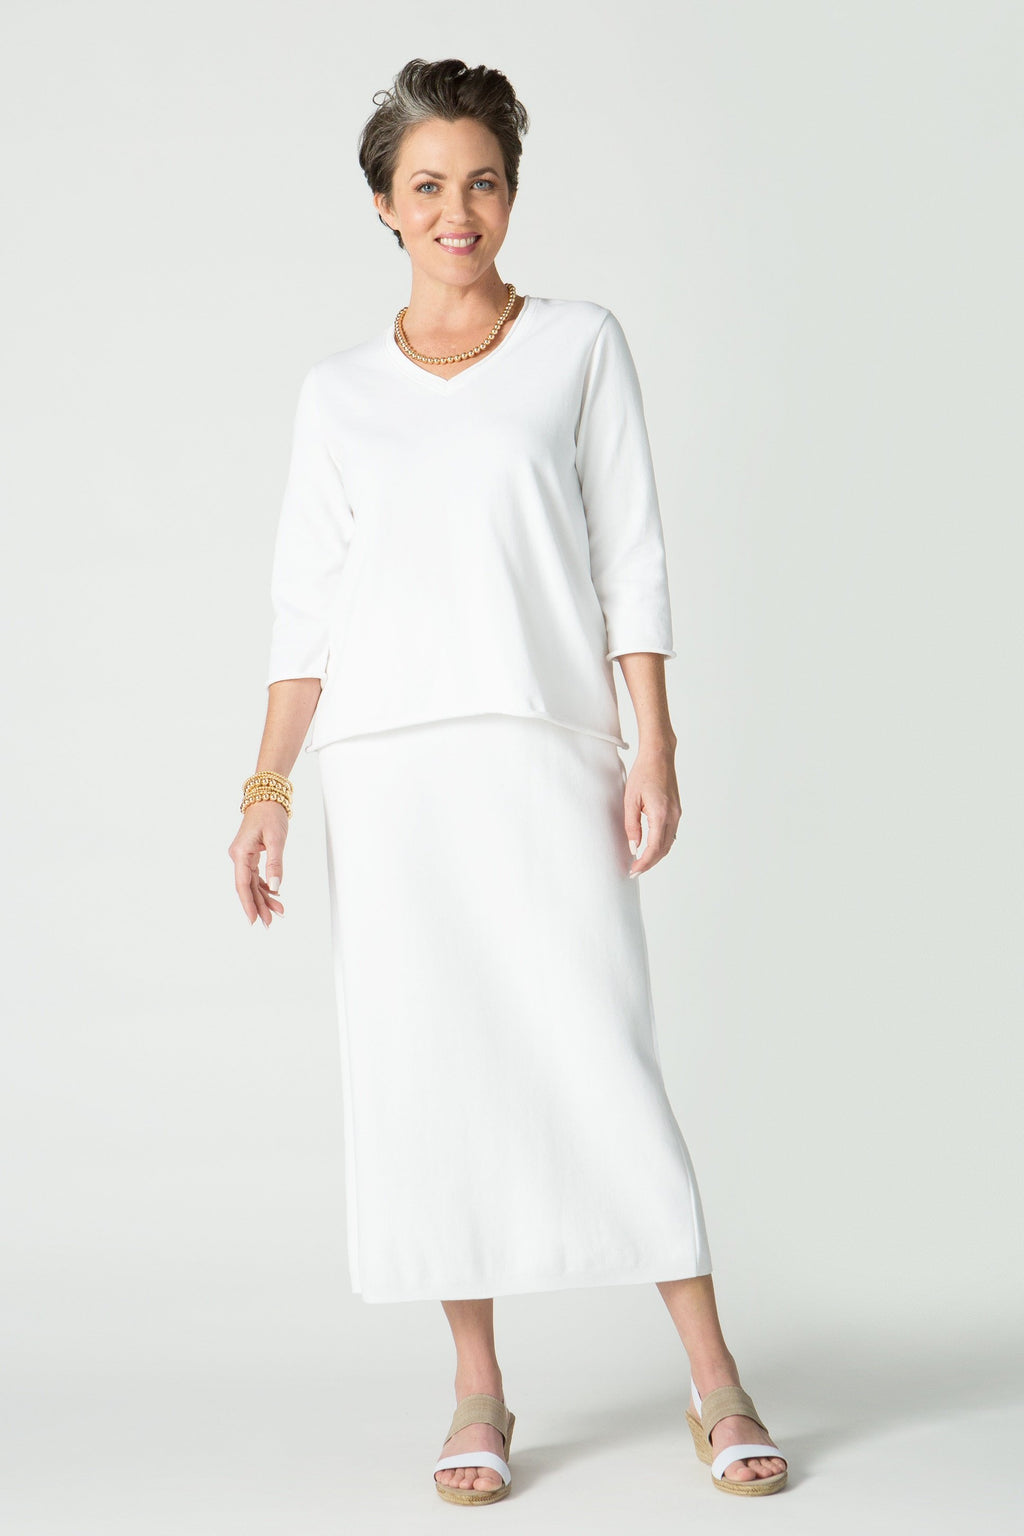 ¾ Sleeve V Neck Top with Roll Trim